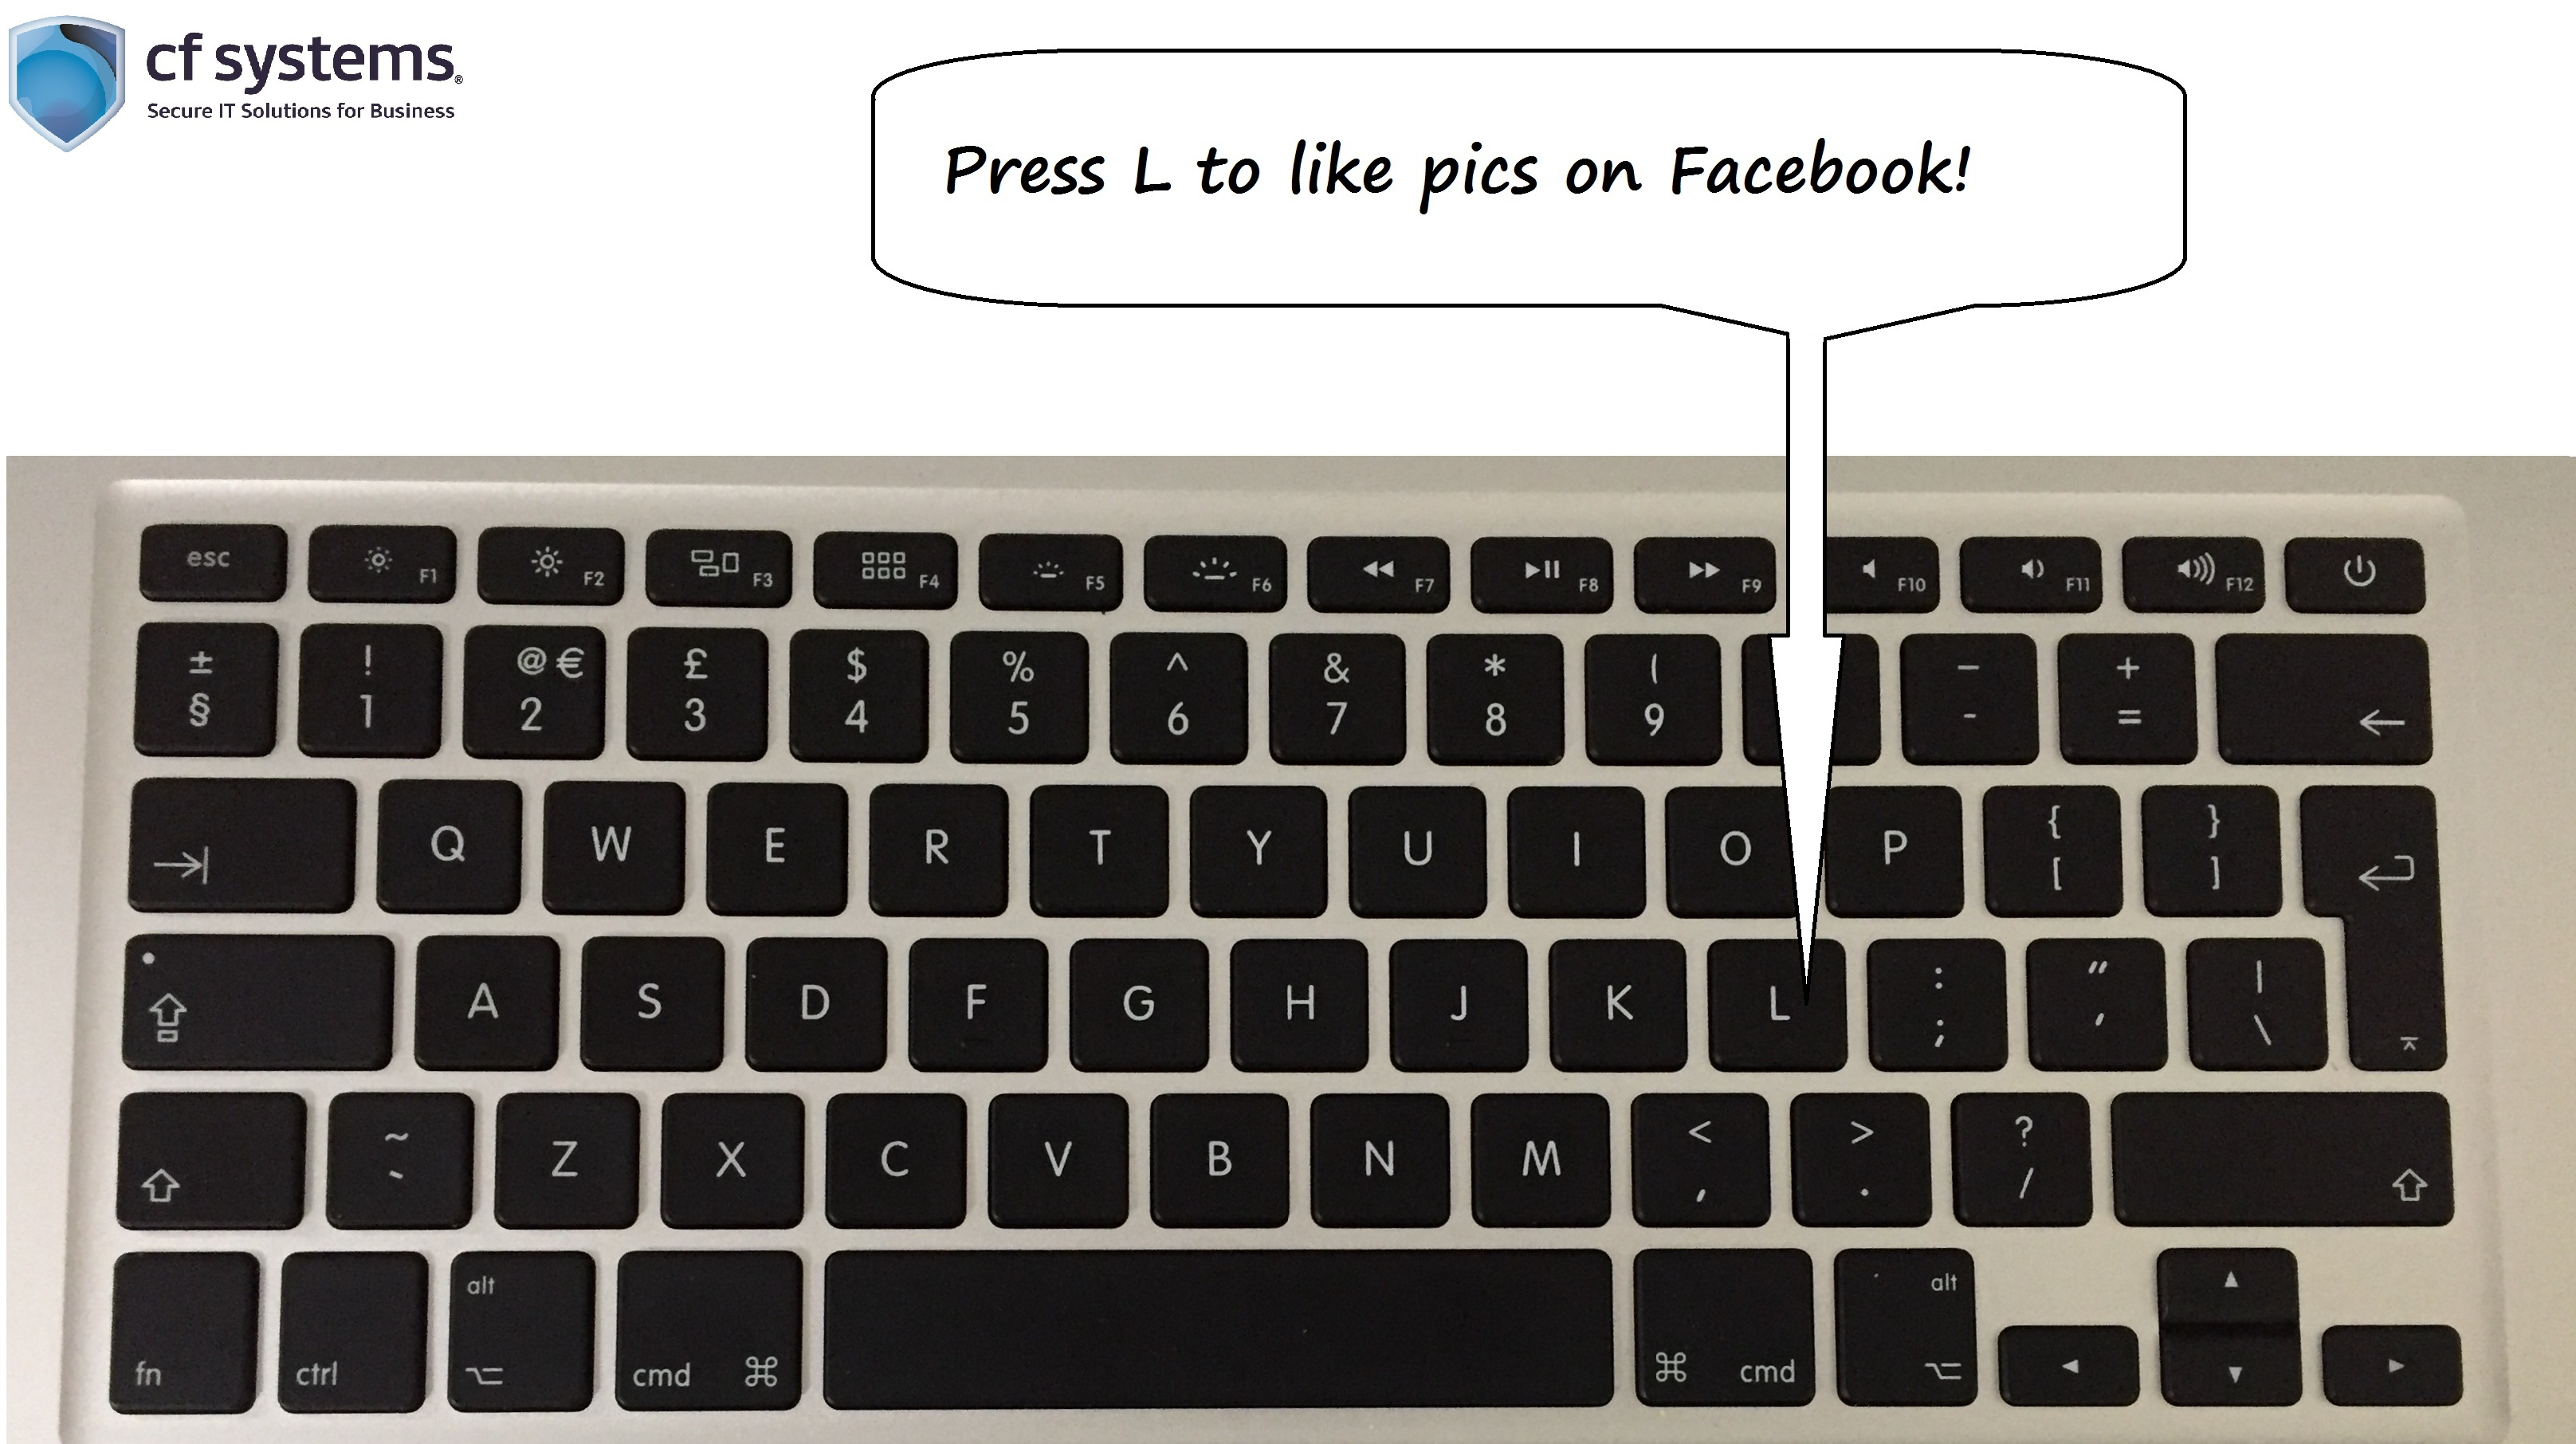 Facebook shortcuts! Like a pic by only using your keyboard.